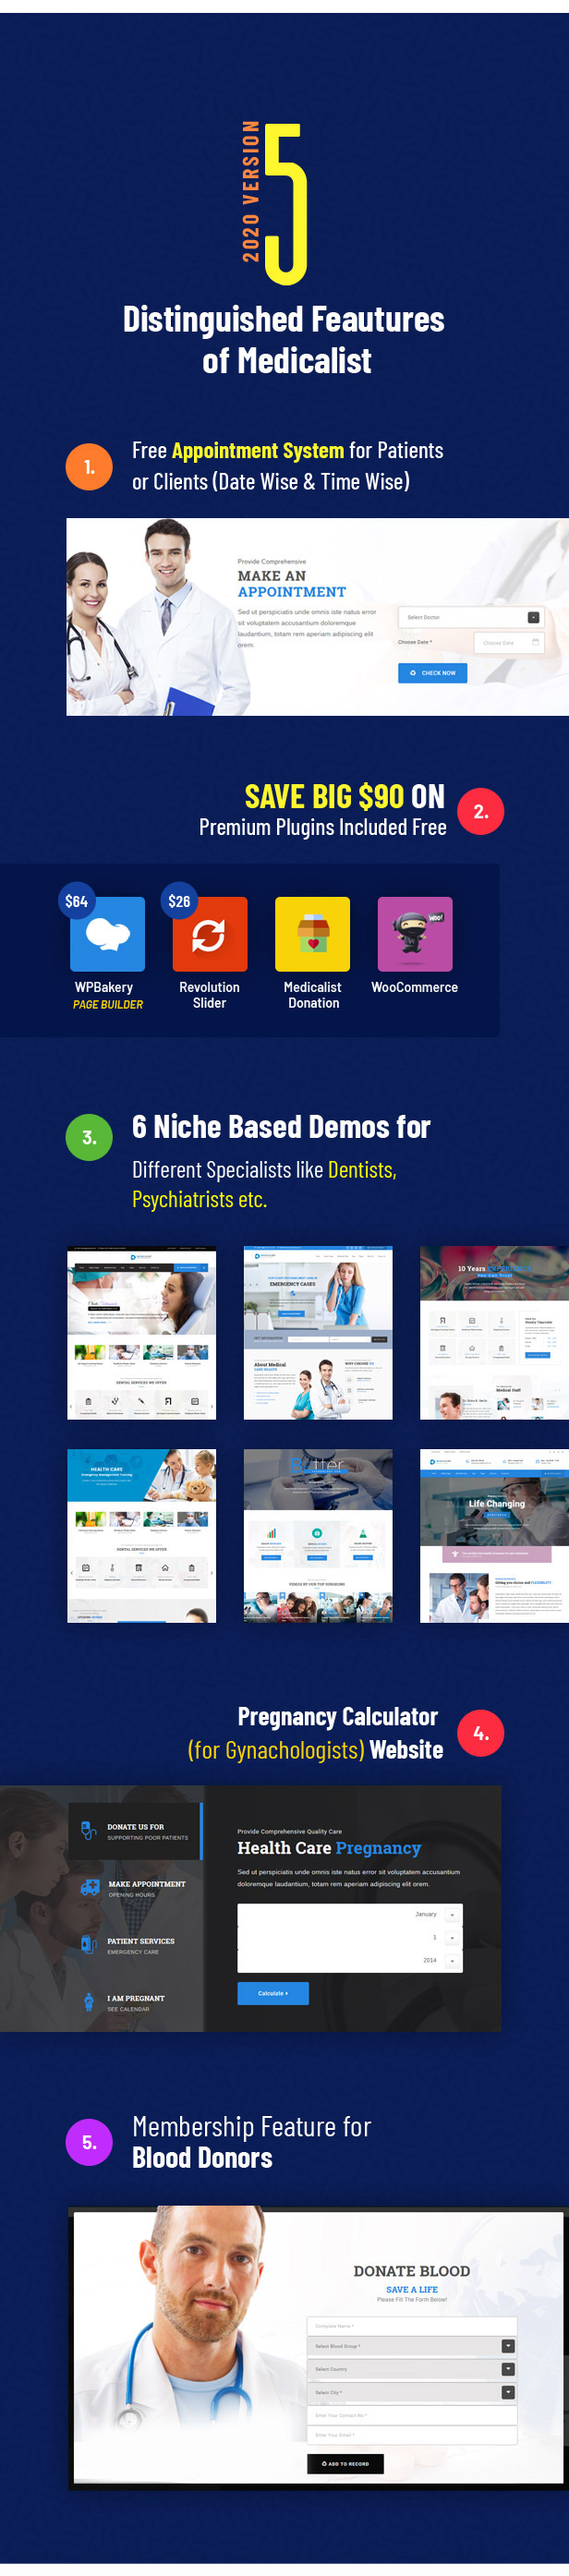 Medicalist - An All-in-One WP Medical Theme with Appointment and Blood Donation System - 3